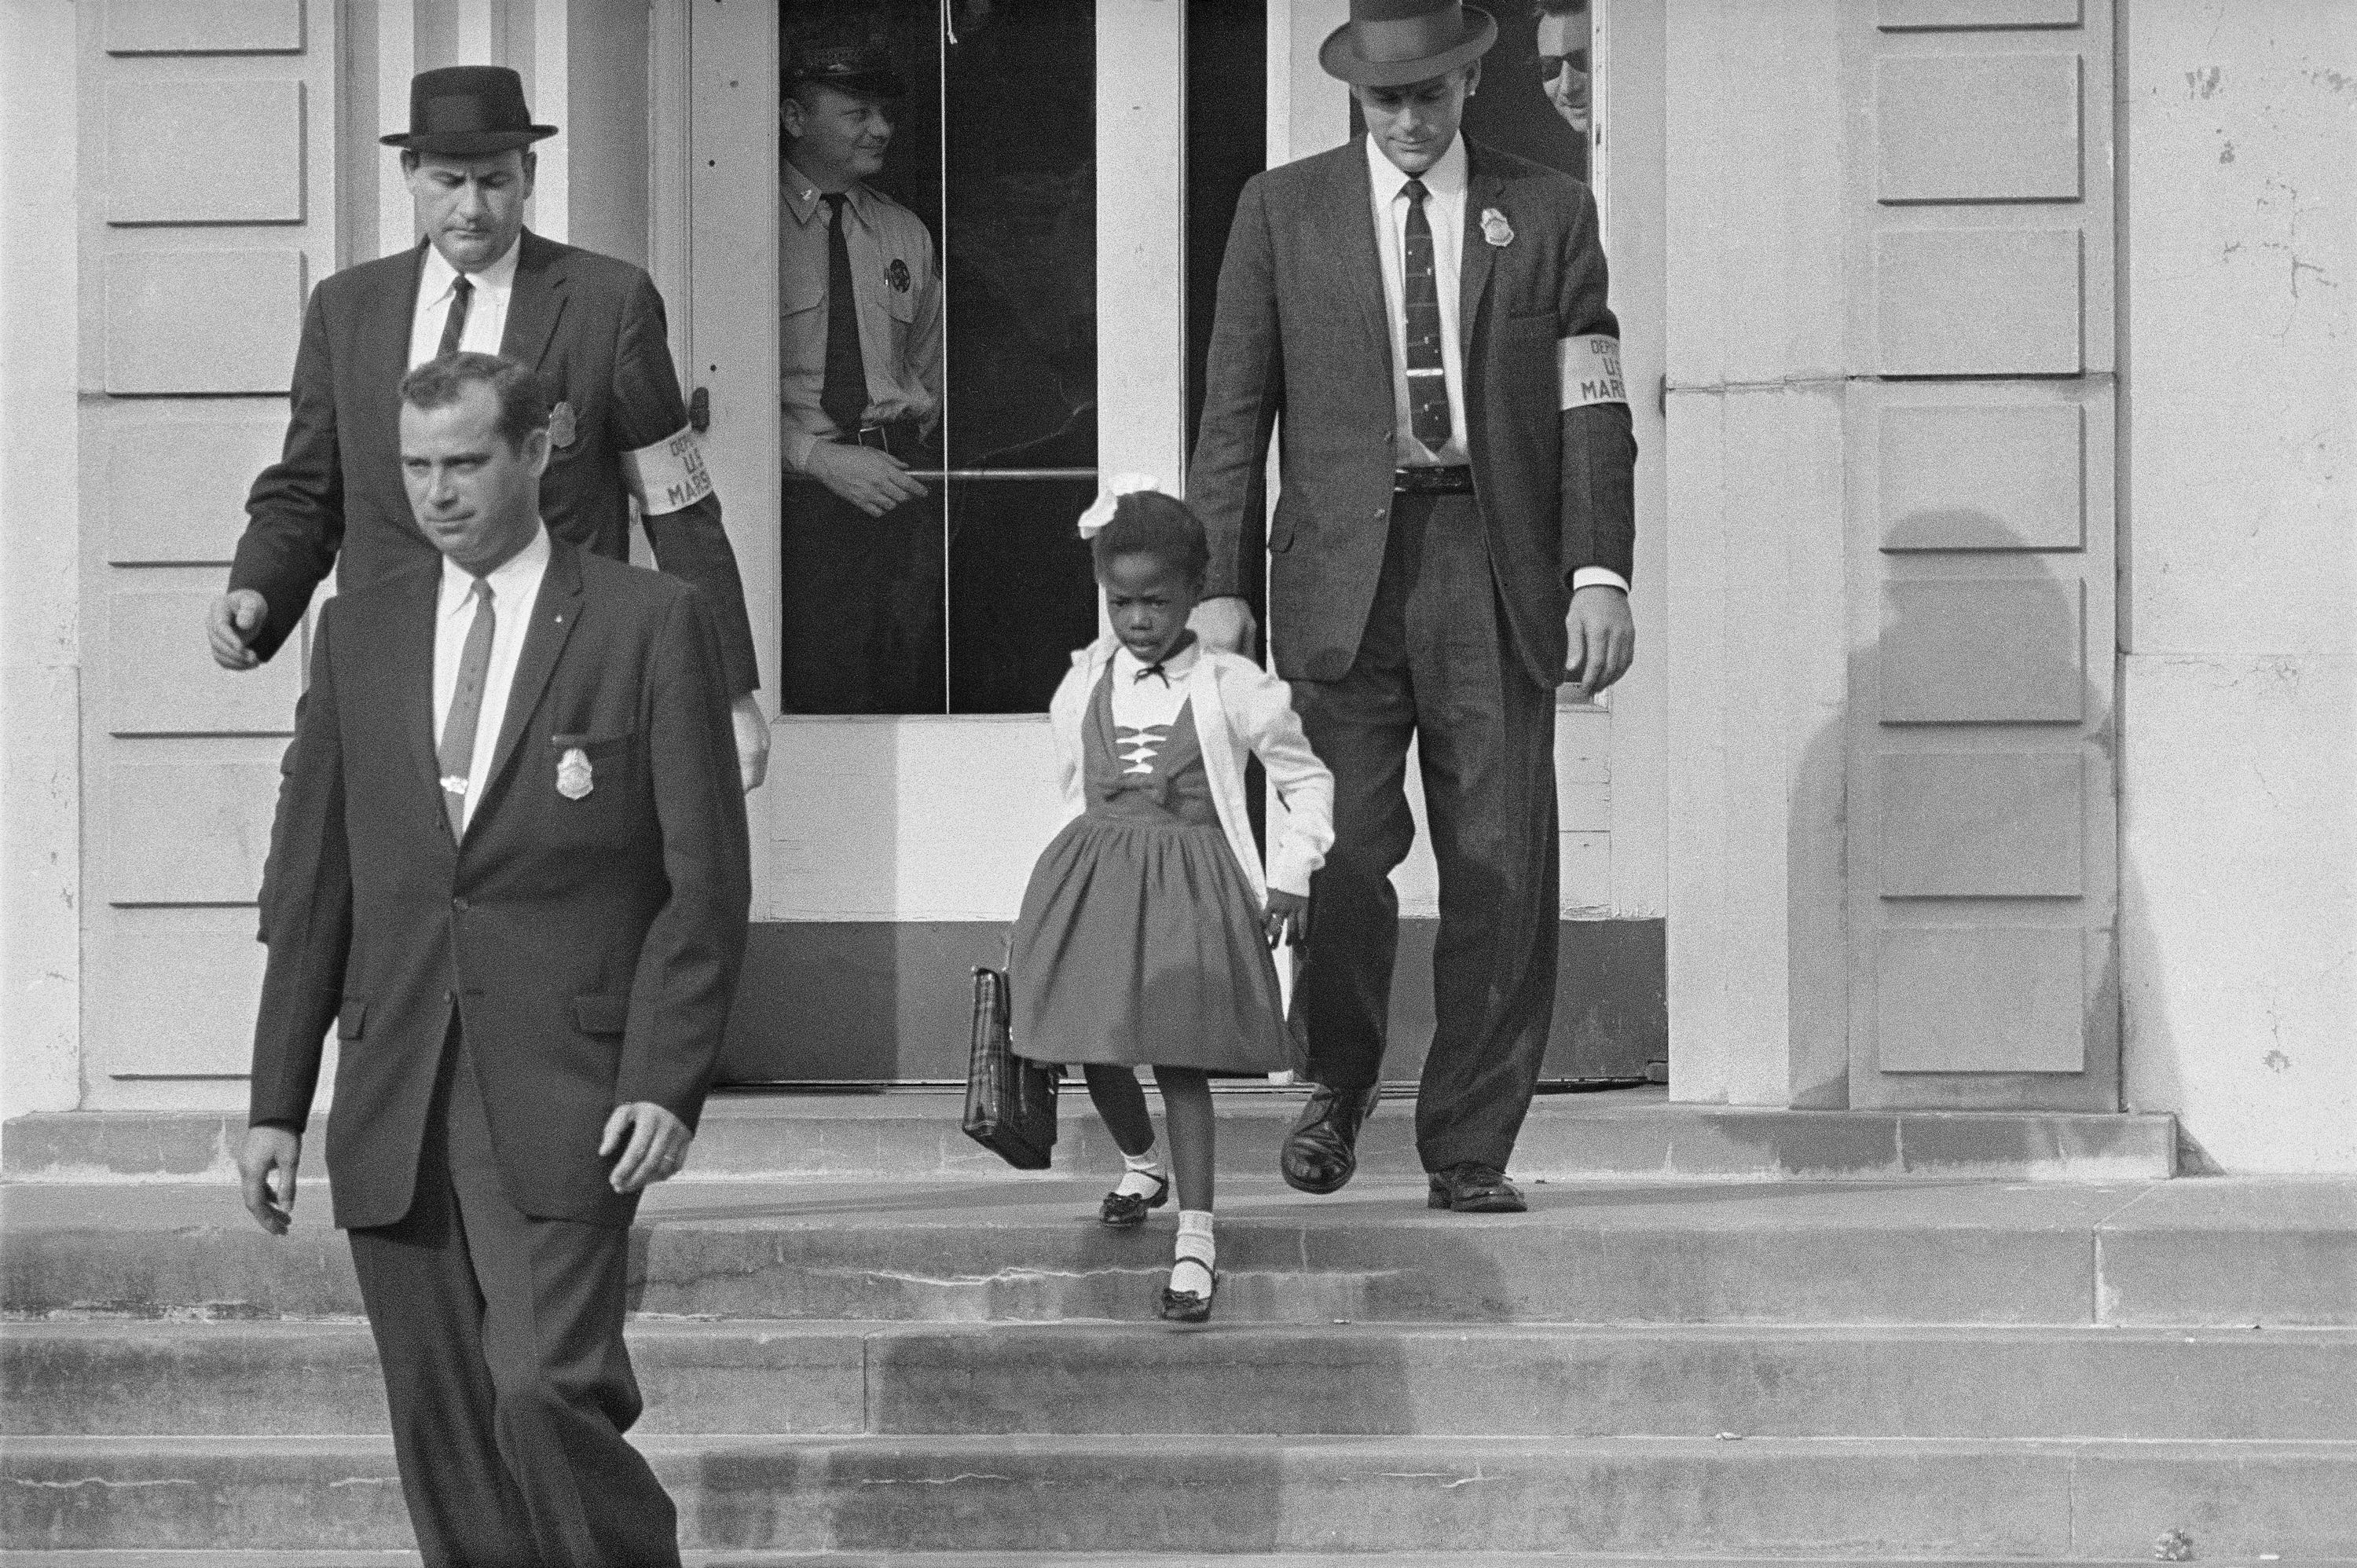 U.S. marshals escorted 6-year-old Ruby Bridges to and from William Frantz Elementary in New Orleans every day during the 1960 school year.